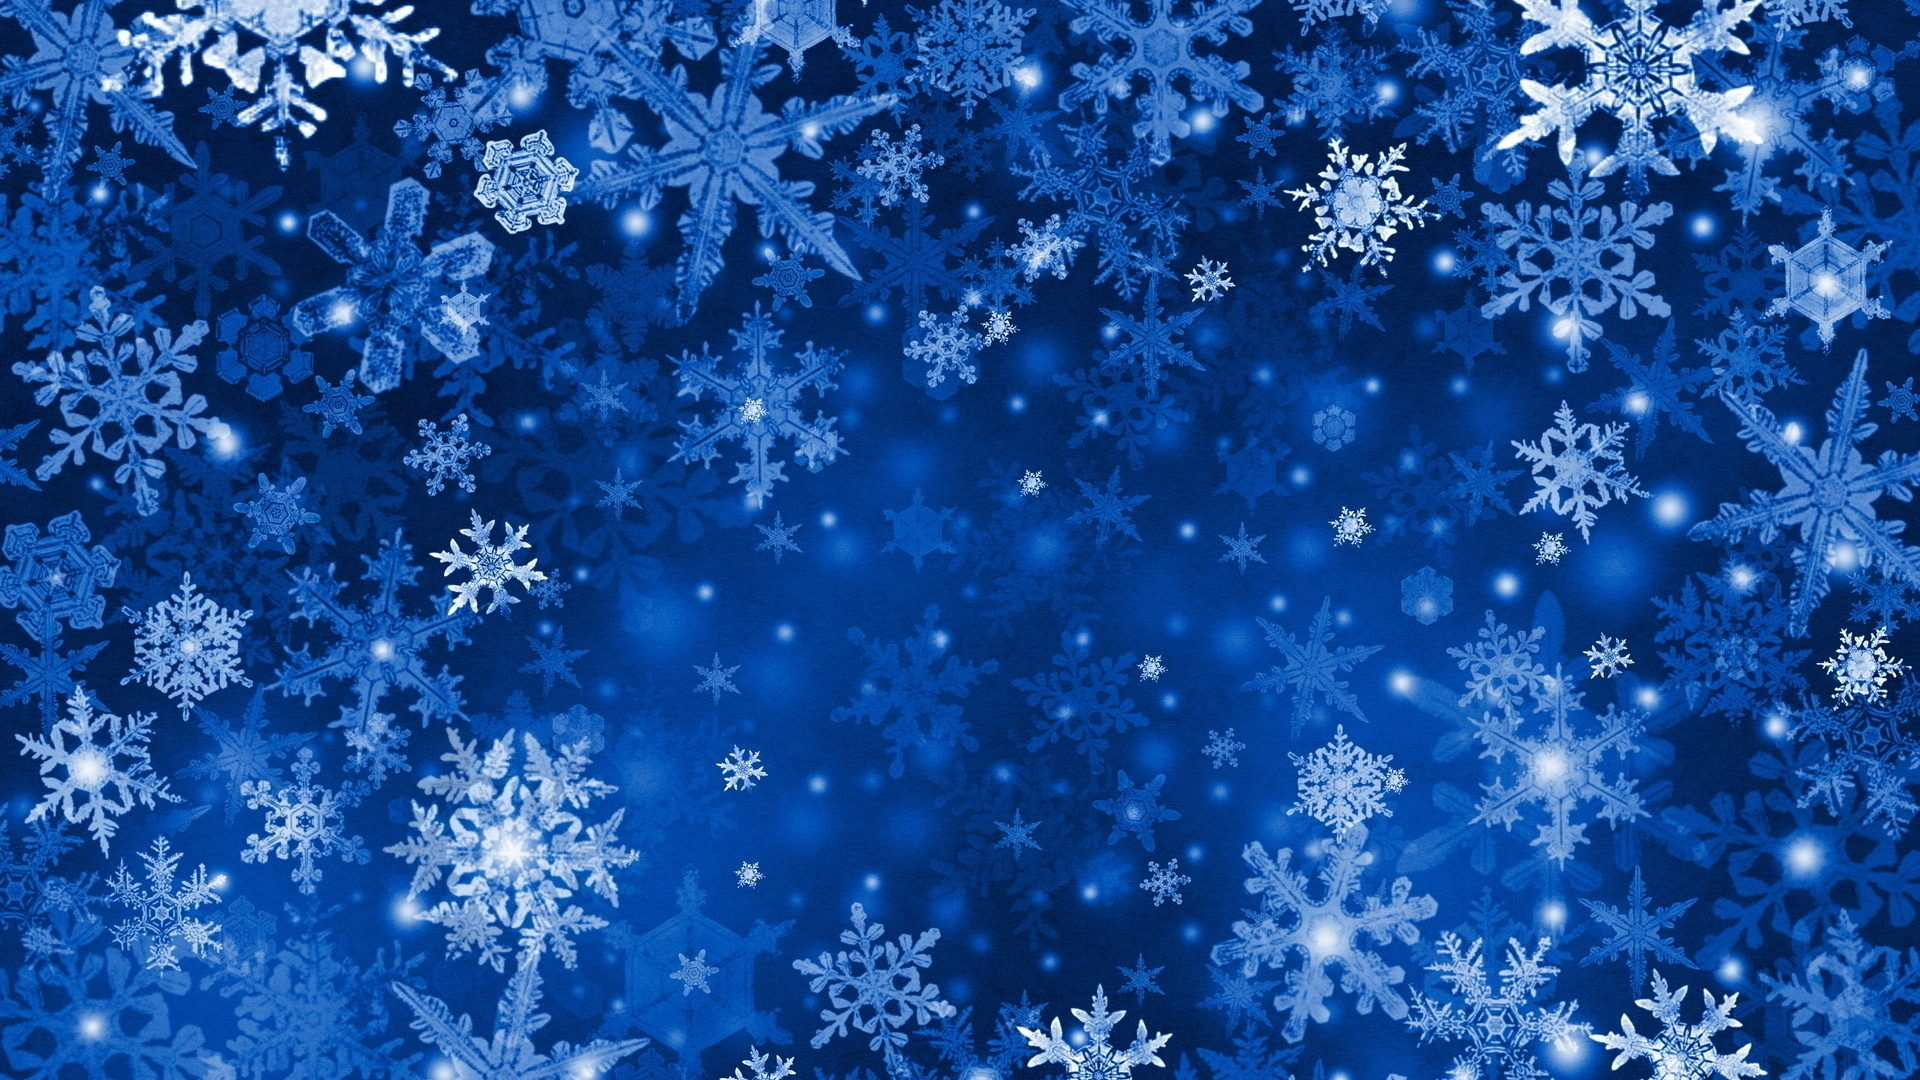 Free Fall Wallpaper For Cell Phones Download Blue Winter Background 3840x2160 Full Hd Wall